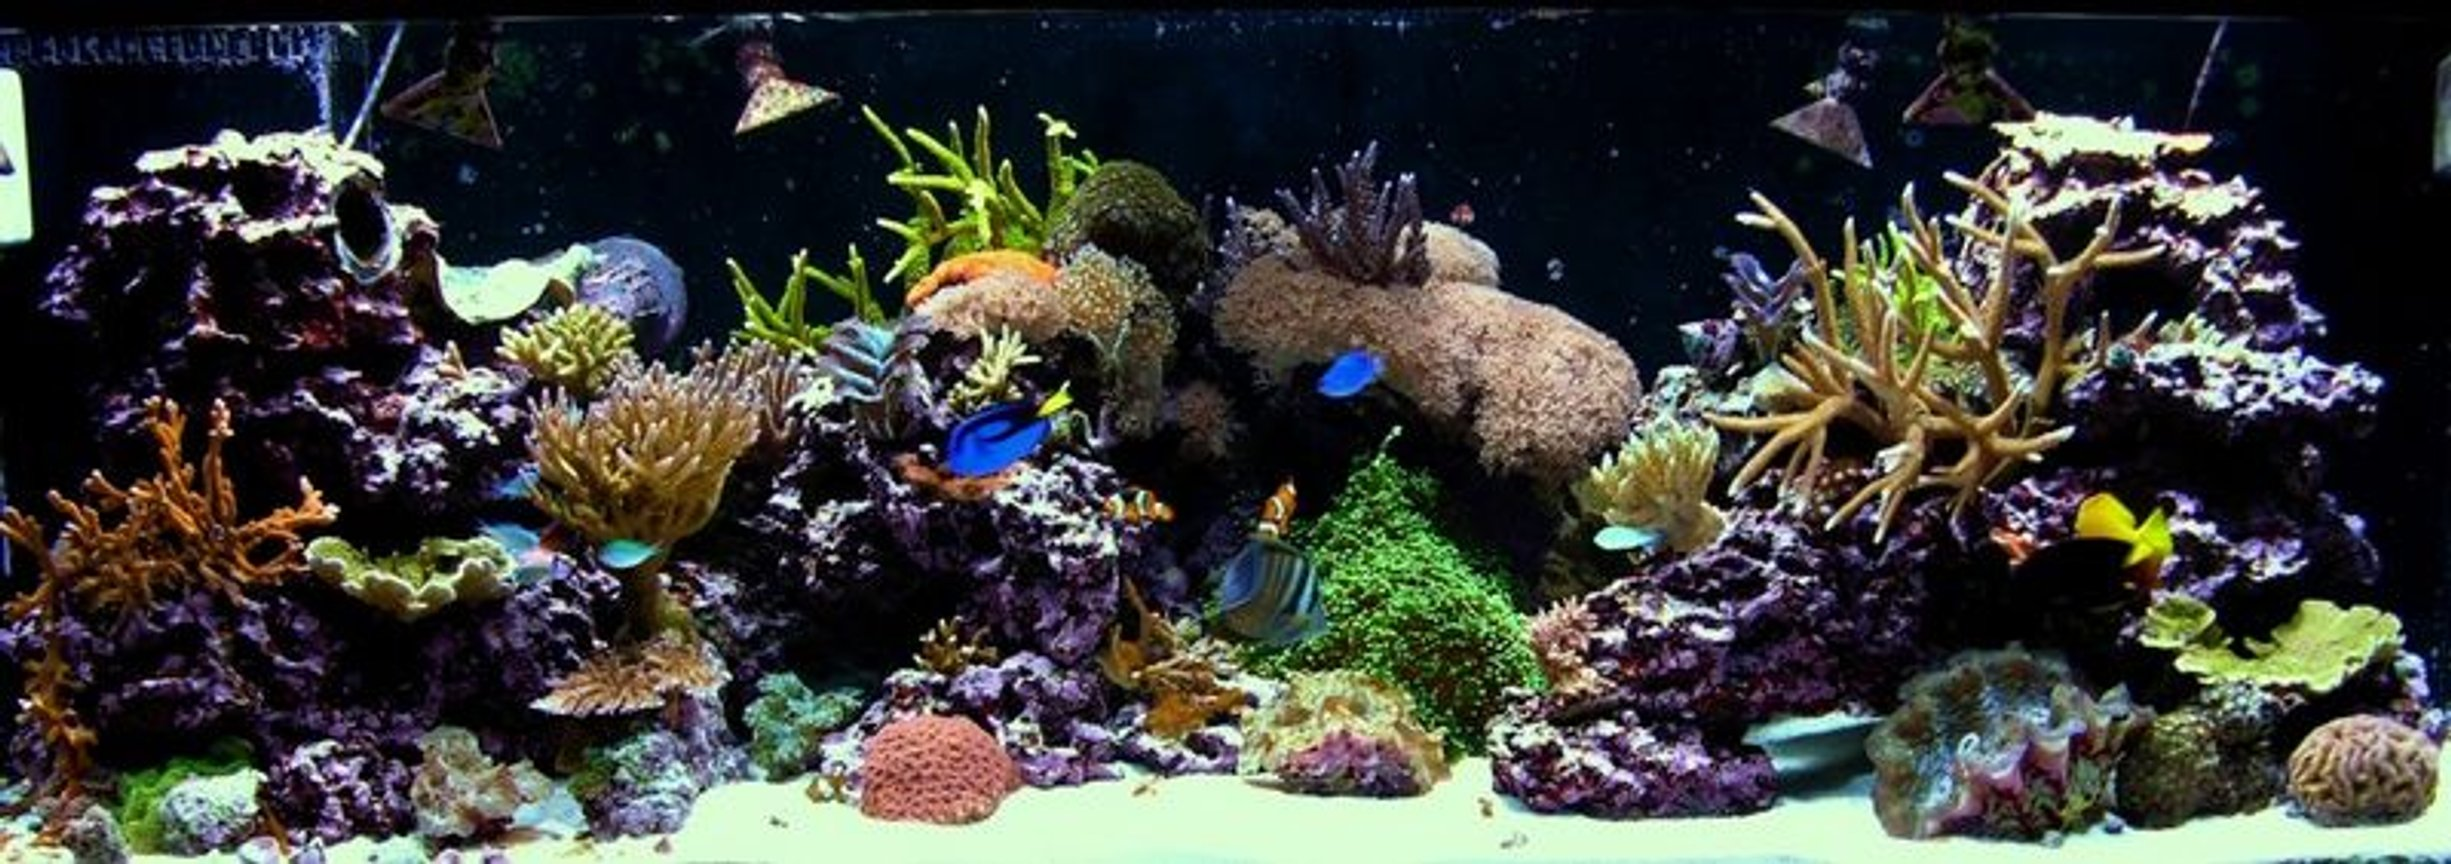 180 gallons reef tank (mostly live coral and fish) - 180G mixed reef